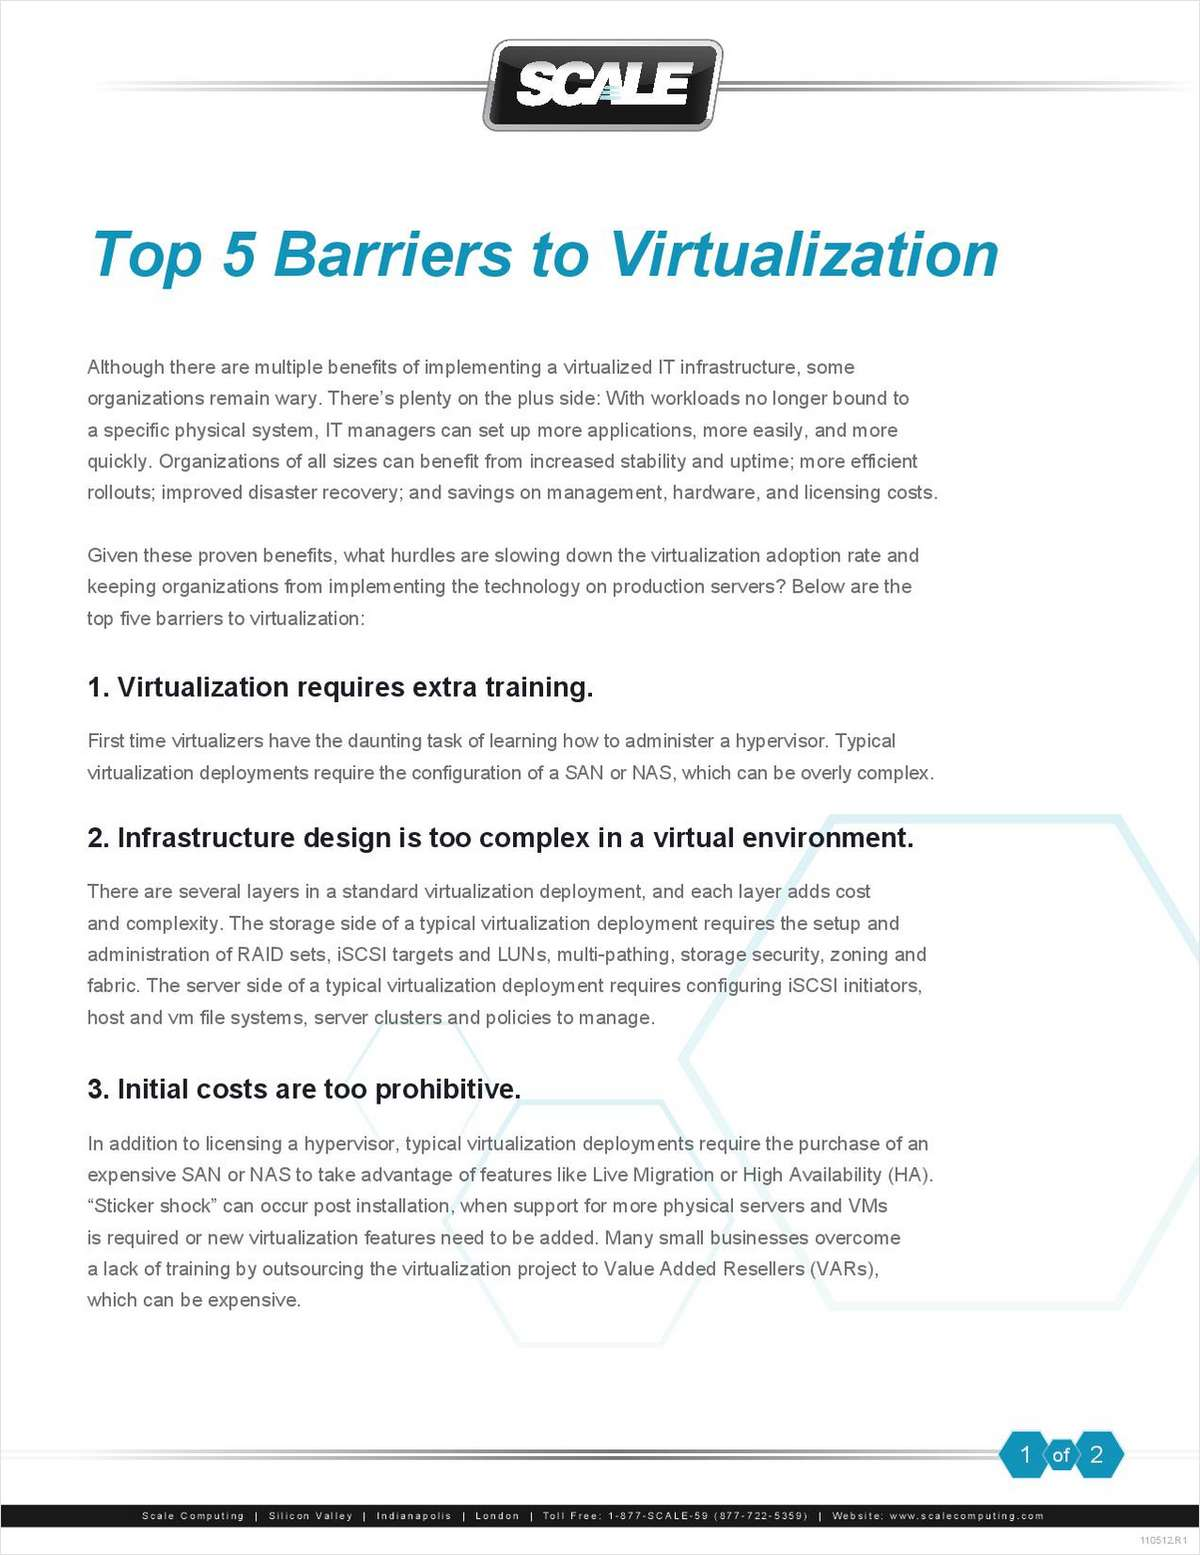 The Top 5 Barriers to Virtualization